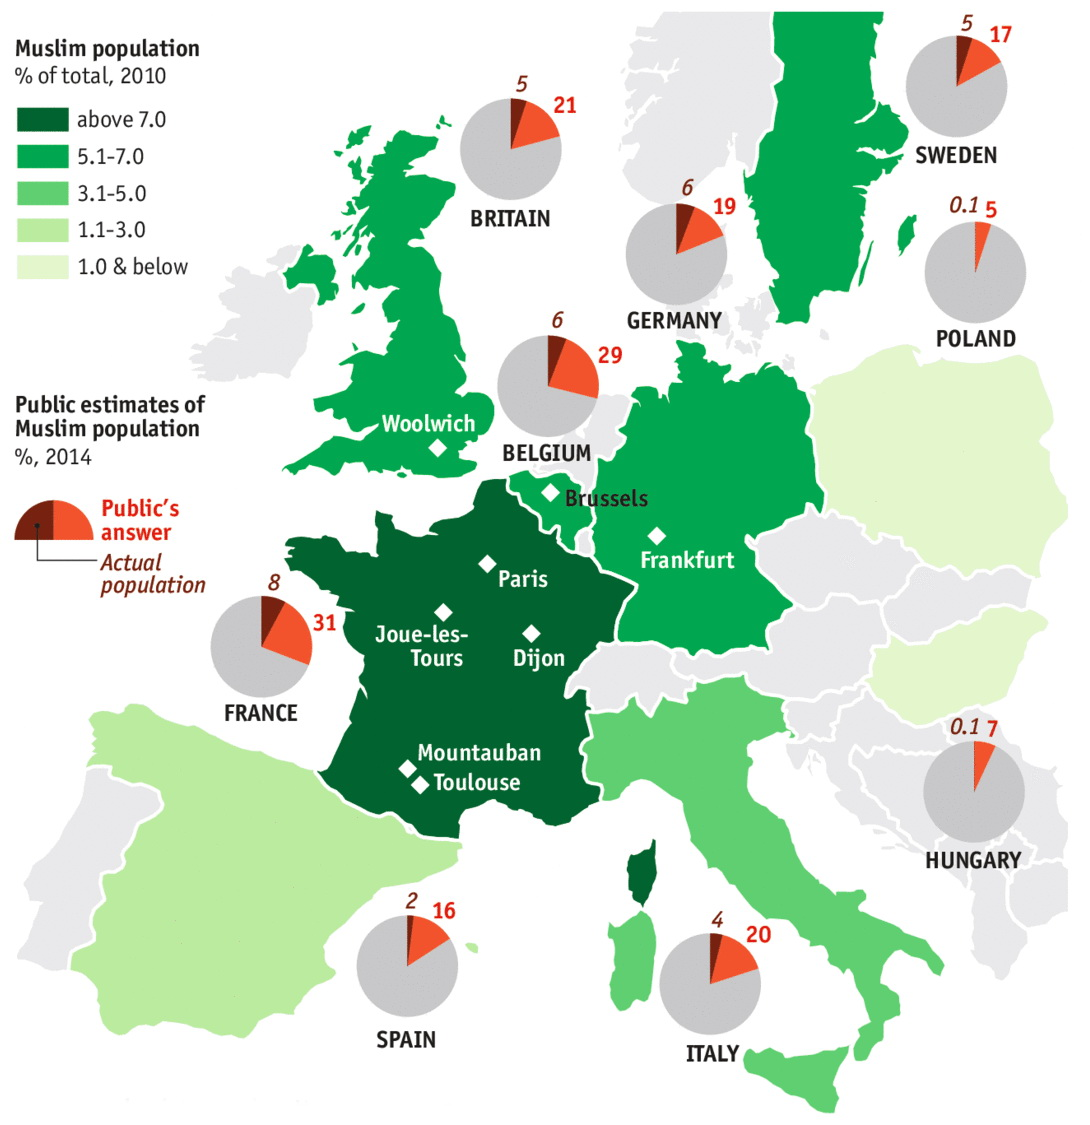 Actual Muslim population (2010) vs Perceived Muslim population (2014) in selected European countries